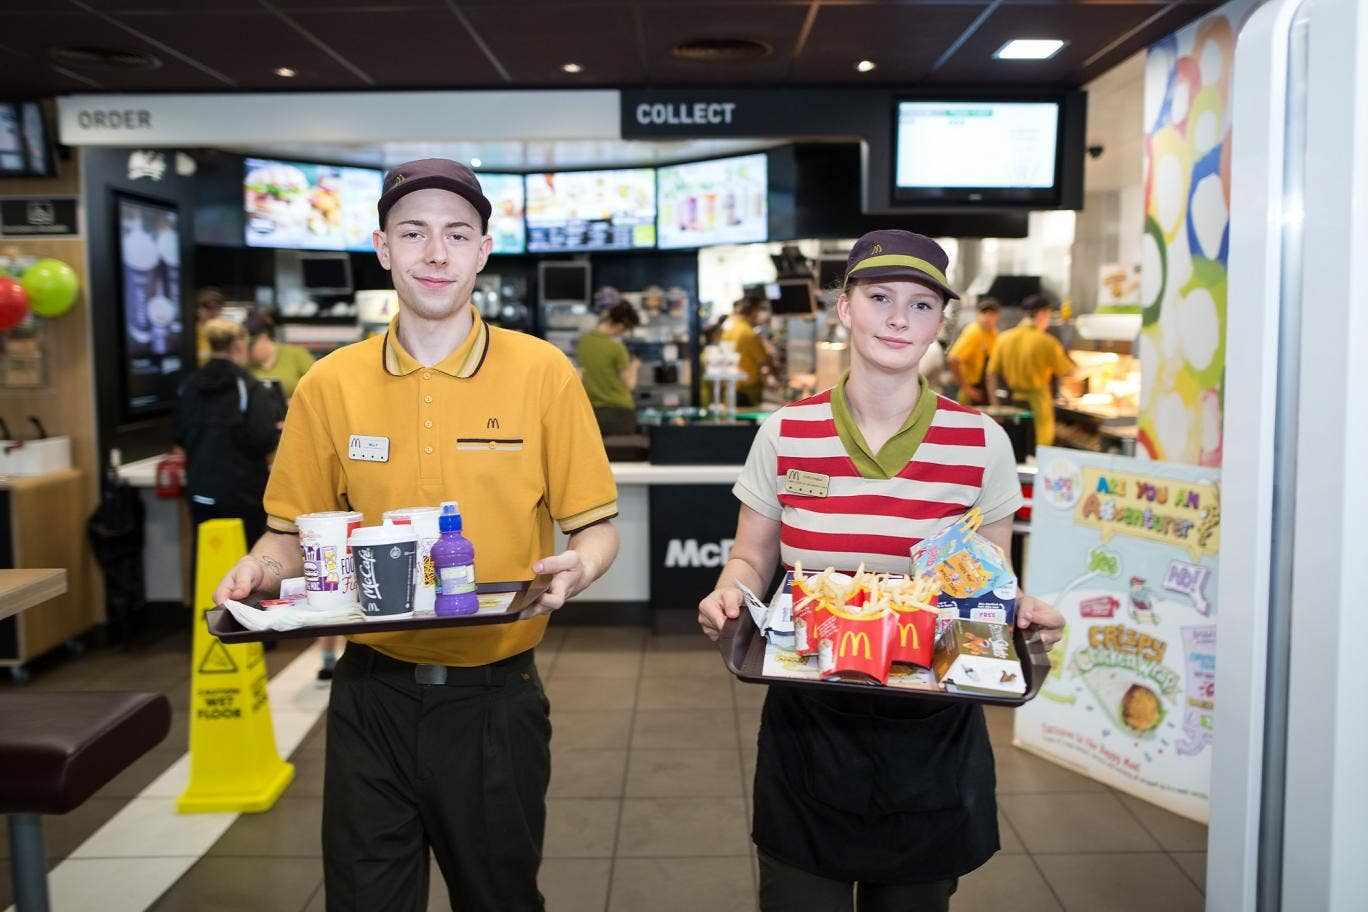 mcdonalds customer care Here you can get the full customer care contact details of mcdonalds mumbai including its address, customer care toll free number and email id.